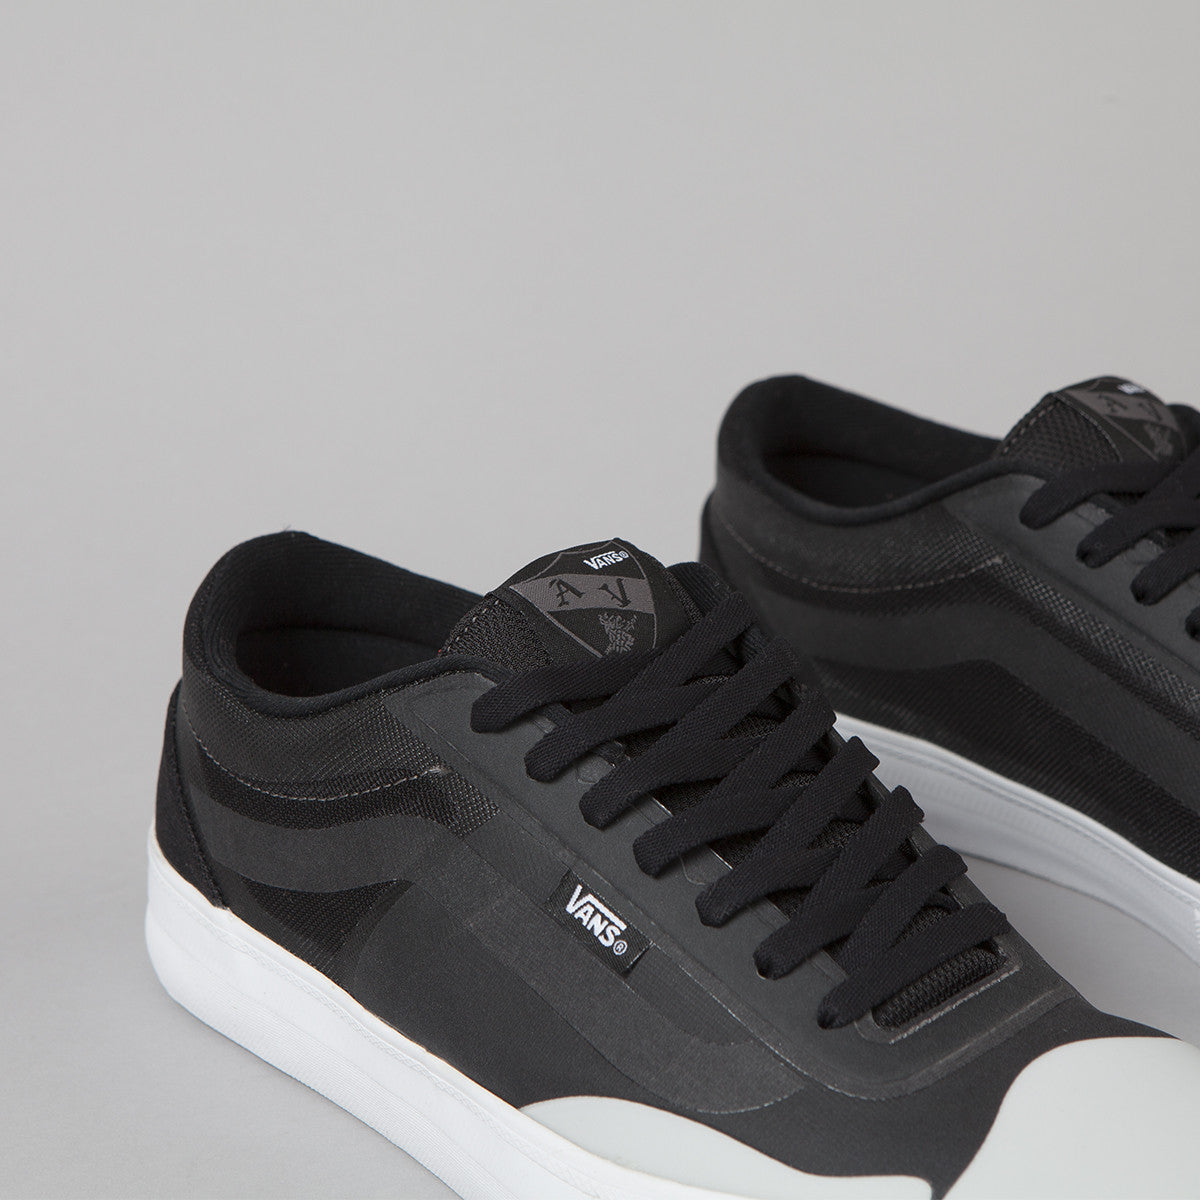 Vans AV Rapidweld Pro Shoes - Black / Light Grey